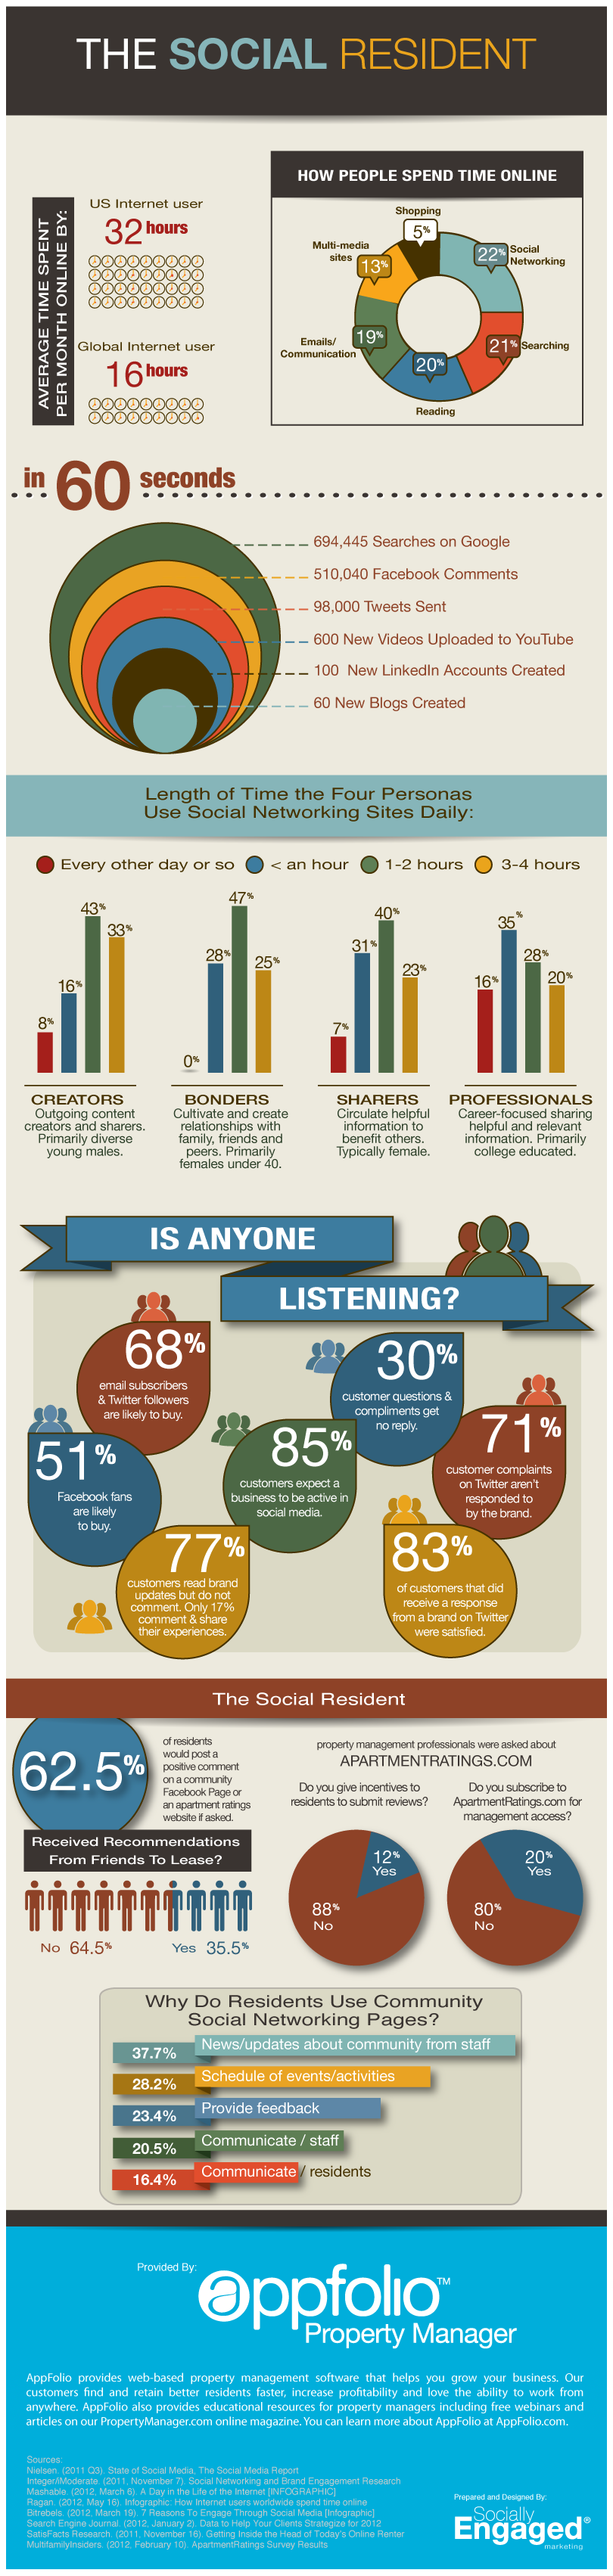 The Social Resident - Property Management Infographic - AppFolio